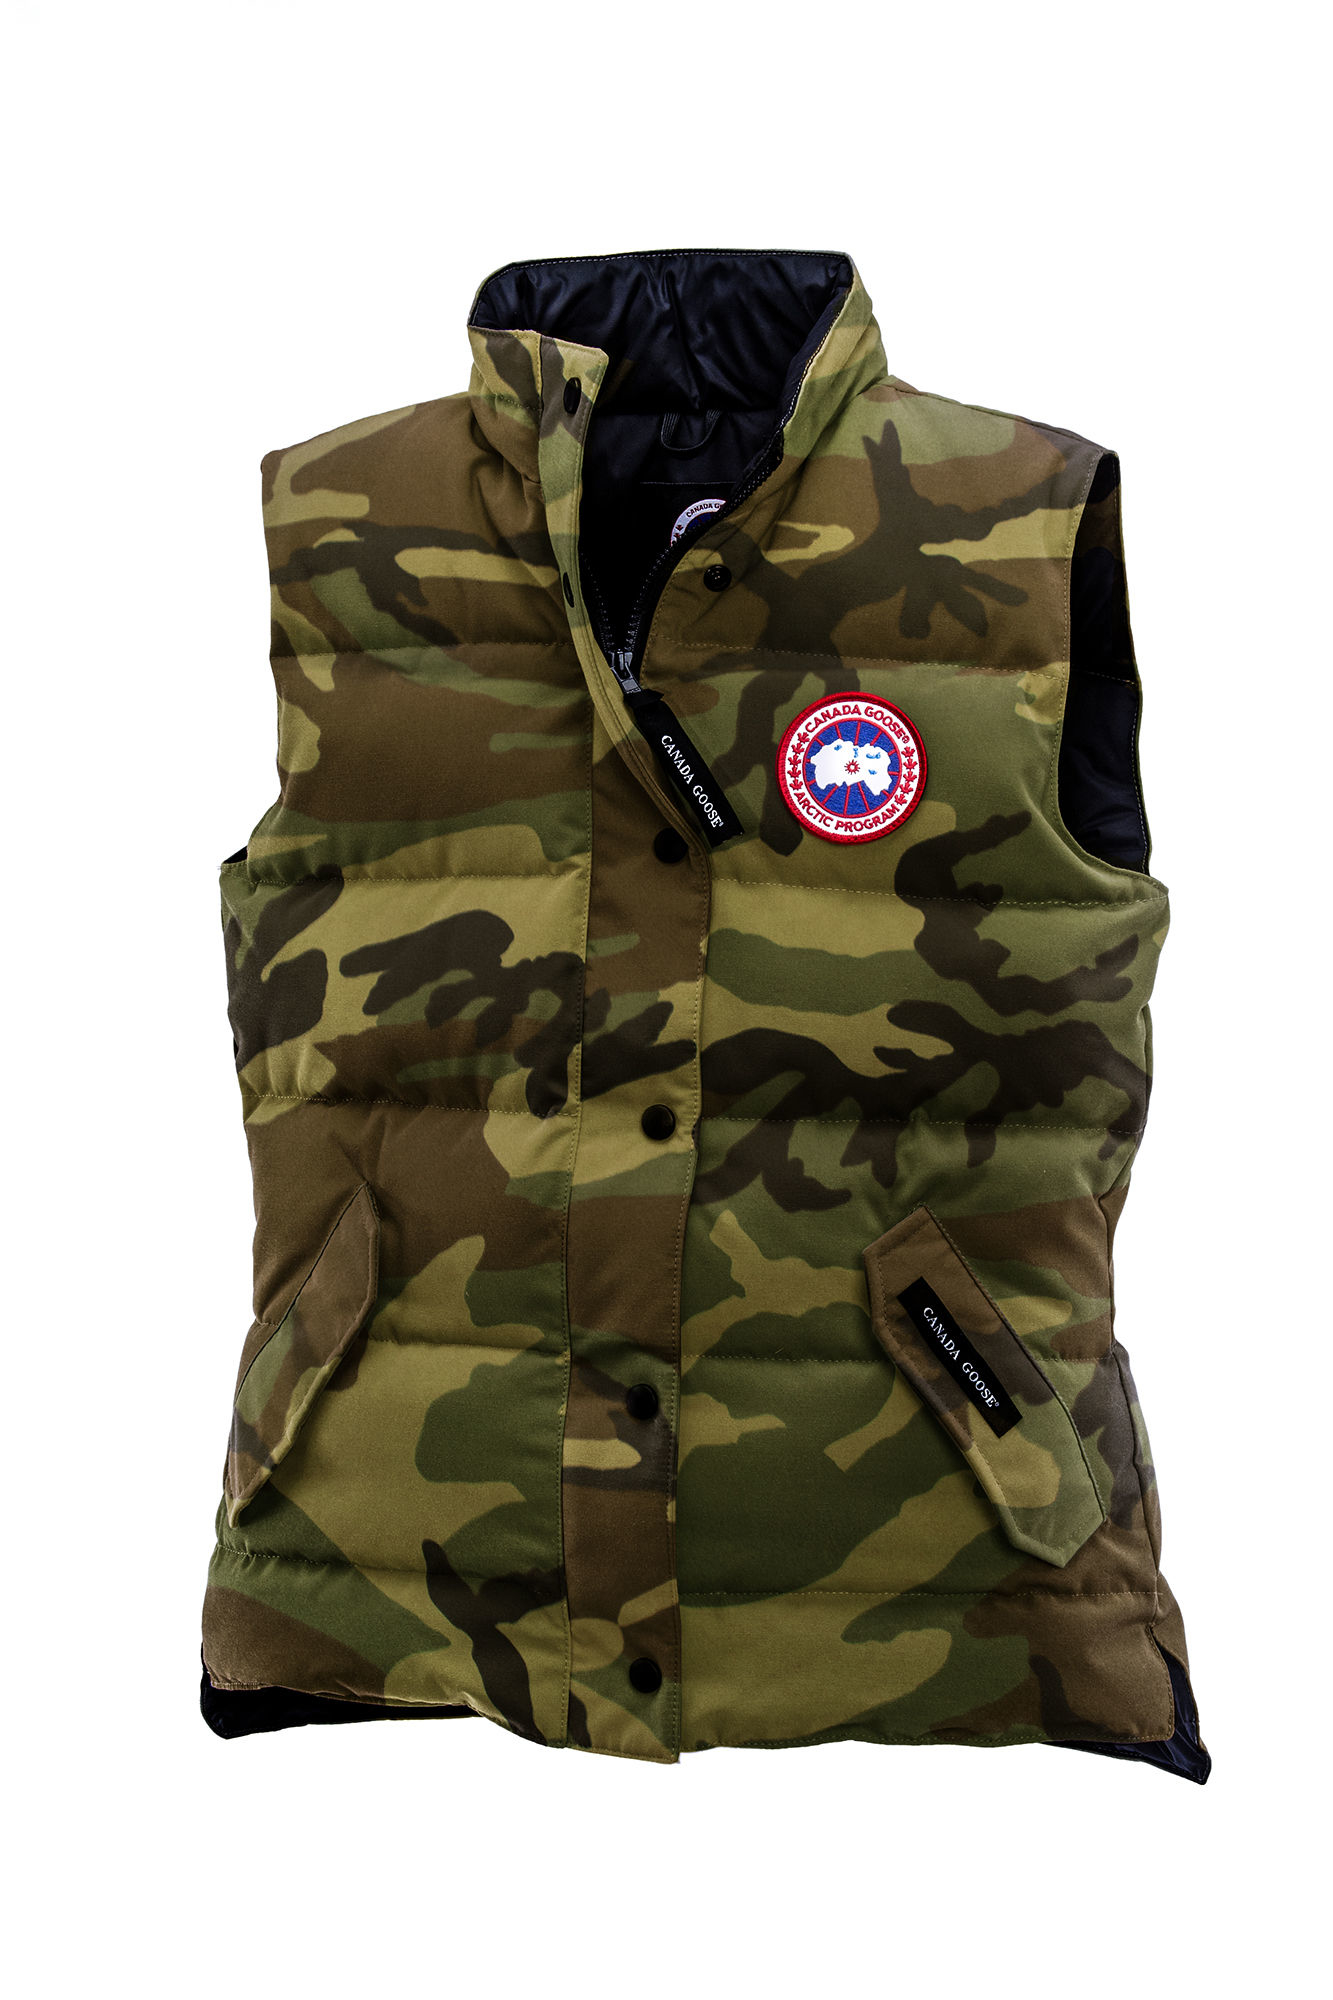 Canada Goose' Freestyle Down Vest - Men's Classic Camo, M